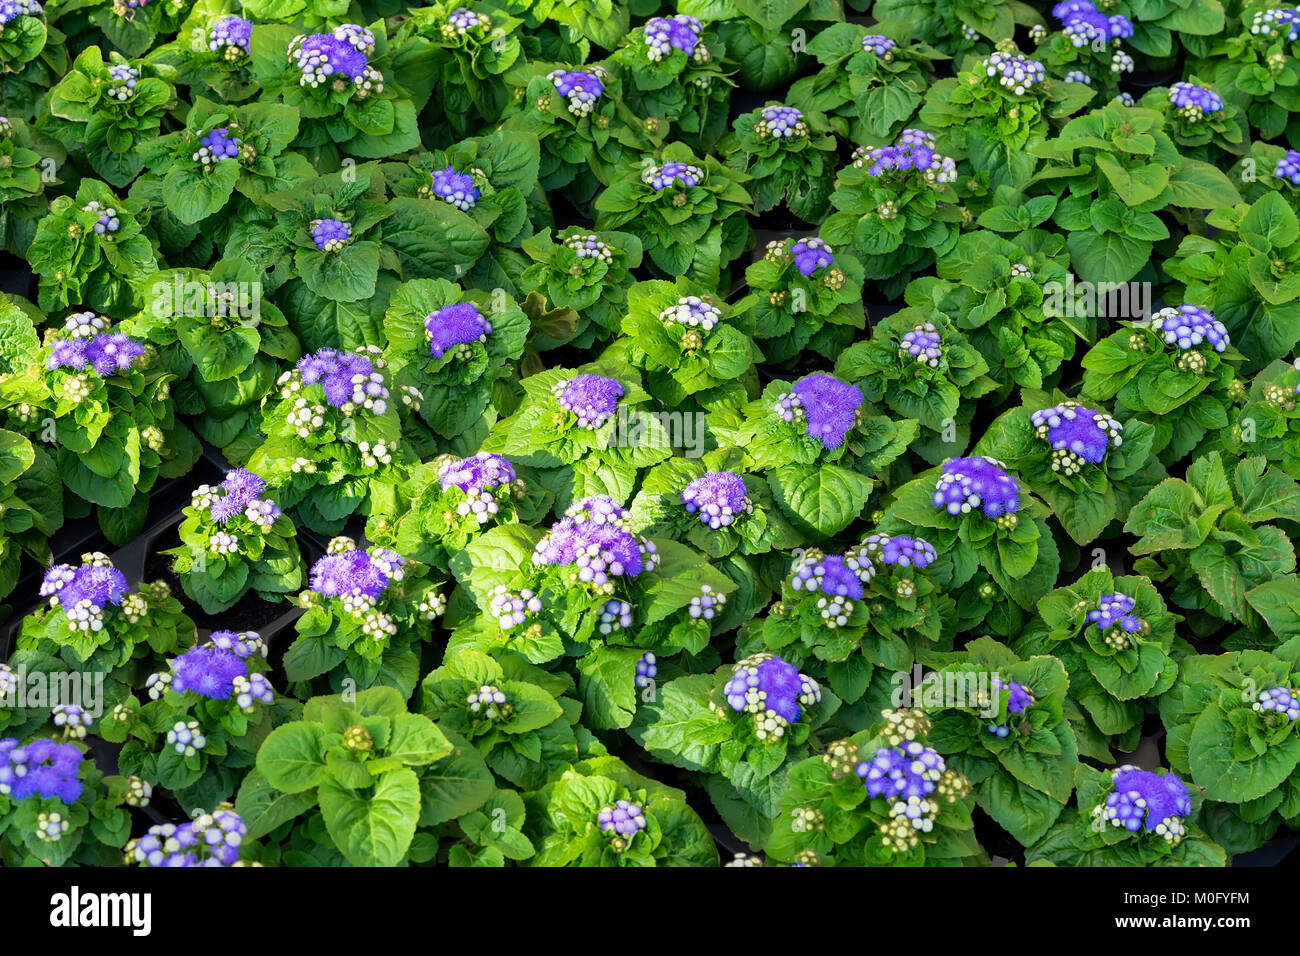 Spring flower seedlings, rows of potted plants in greenhouse. Natural green background - Stock Image